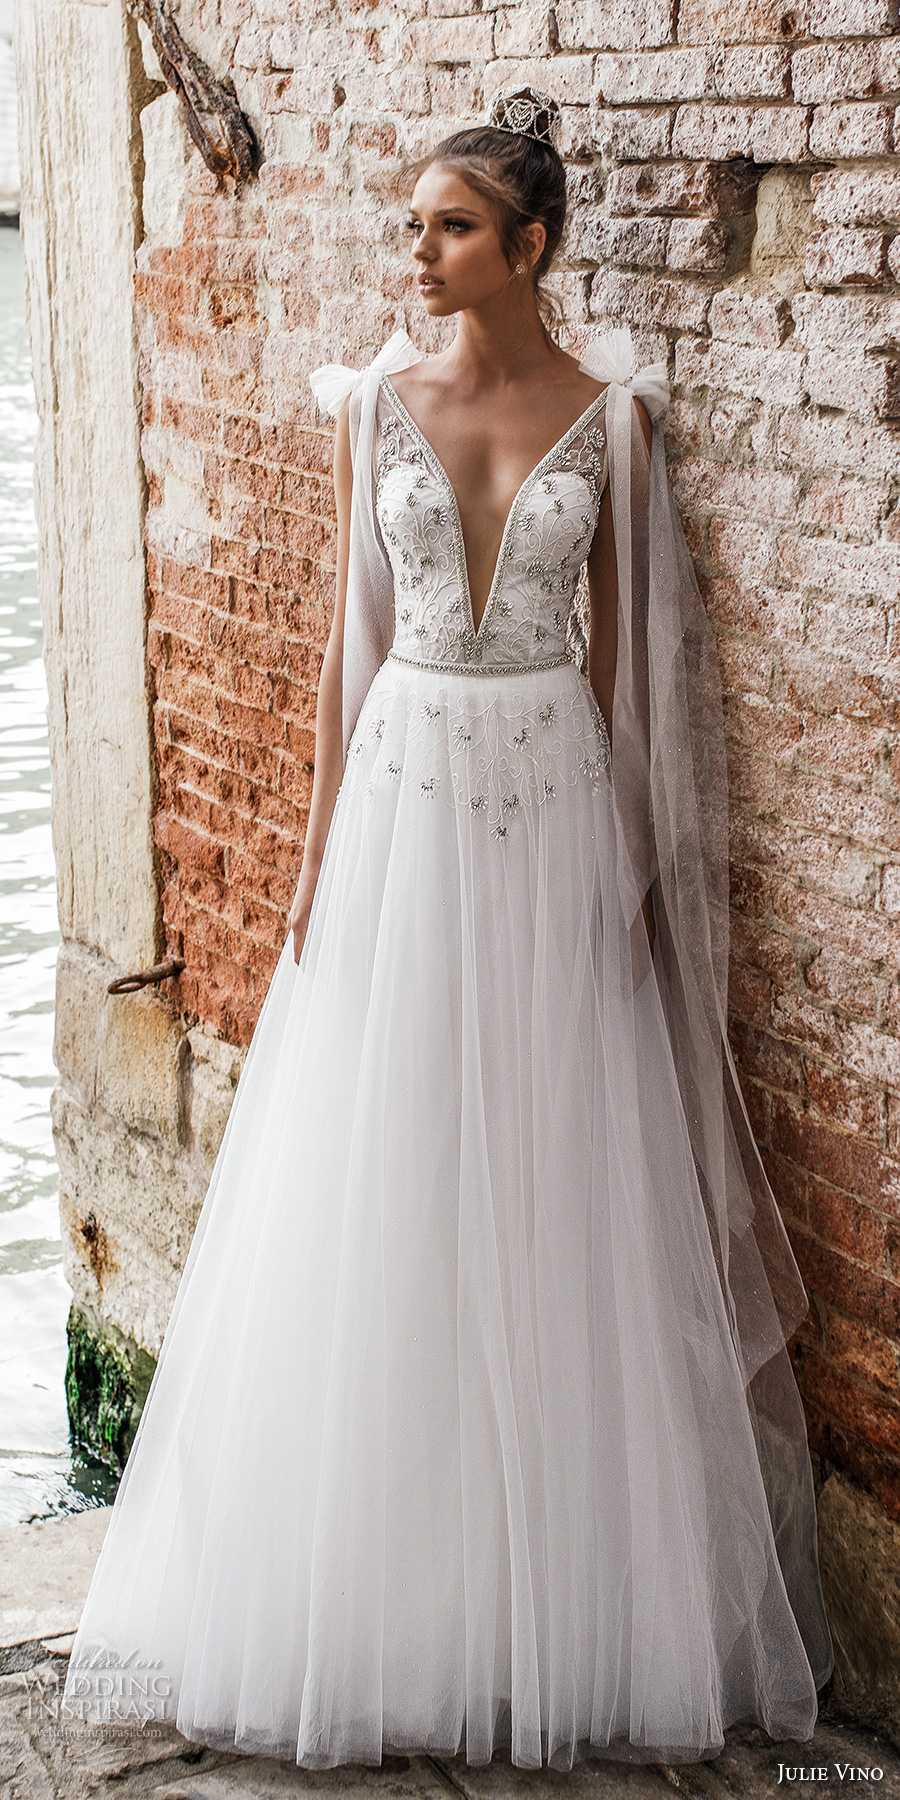 2018 Wedding Gown Trends